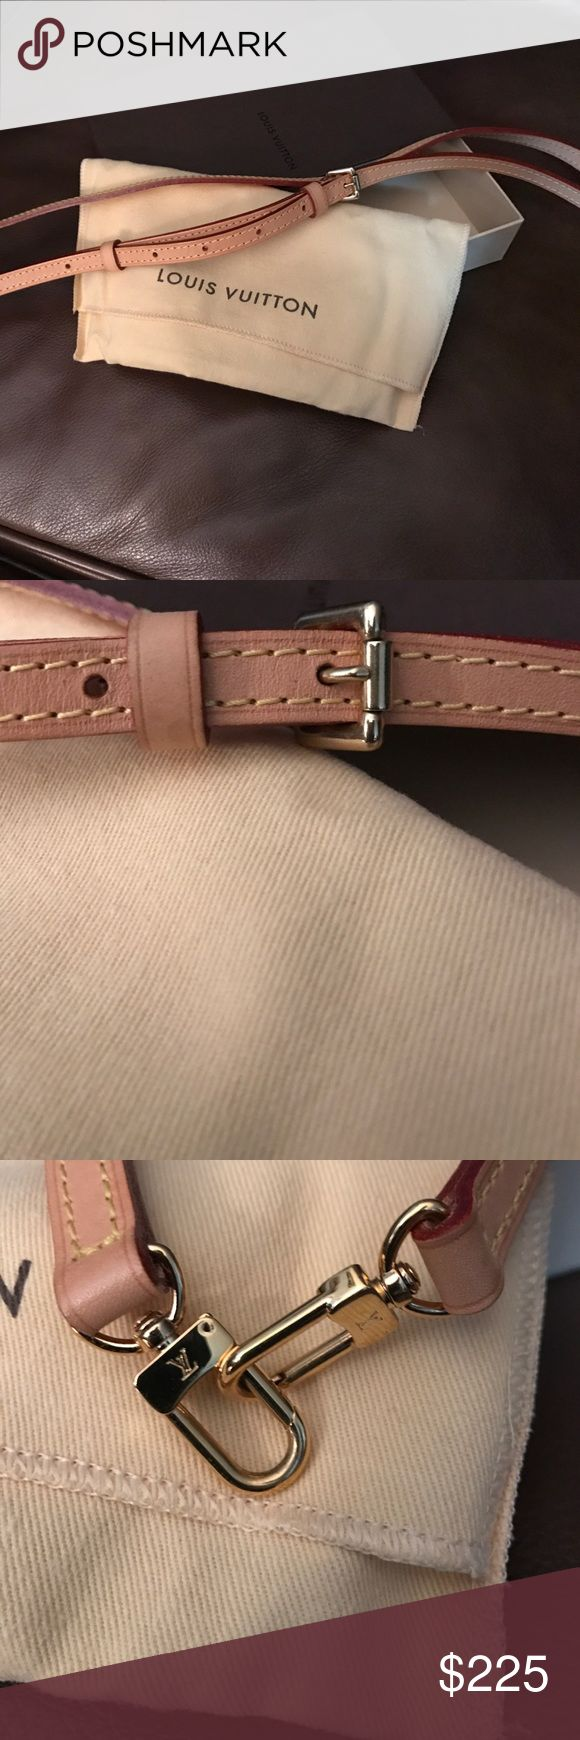 Louis Vuitton Waist Belt/Bag  Adjustable Brand New Brand new 💯 Authentic LV belt that can be used as a waist belt or a bag belt.   Comes in LV box and dust bag .    As you can see this belt has always been kept in its pouch and has not oxygenized yet anywhere.   Just purchased a few months ago in Toronto Canada and never got a chance to use it.    Has not belt markings to show you no use. Louis Vuitton Accessories Belts